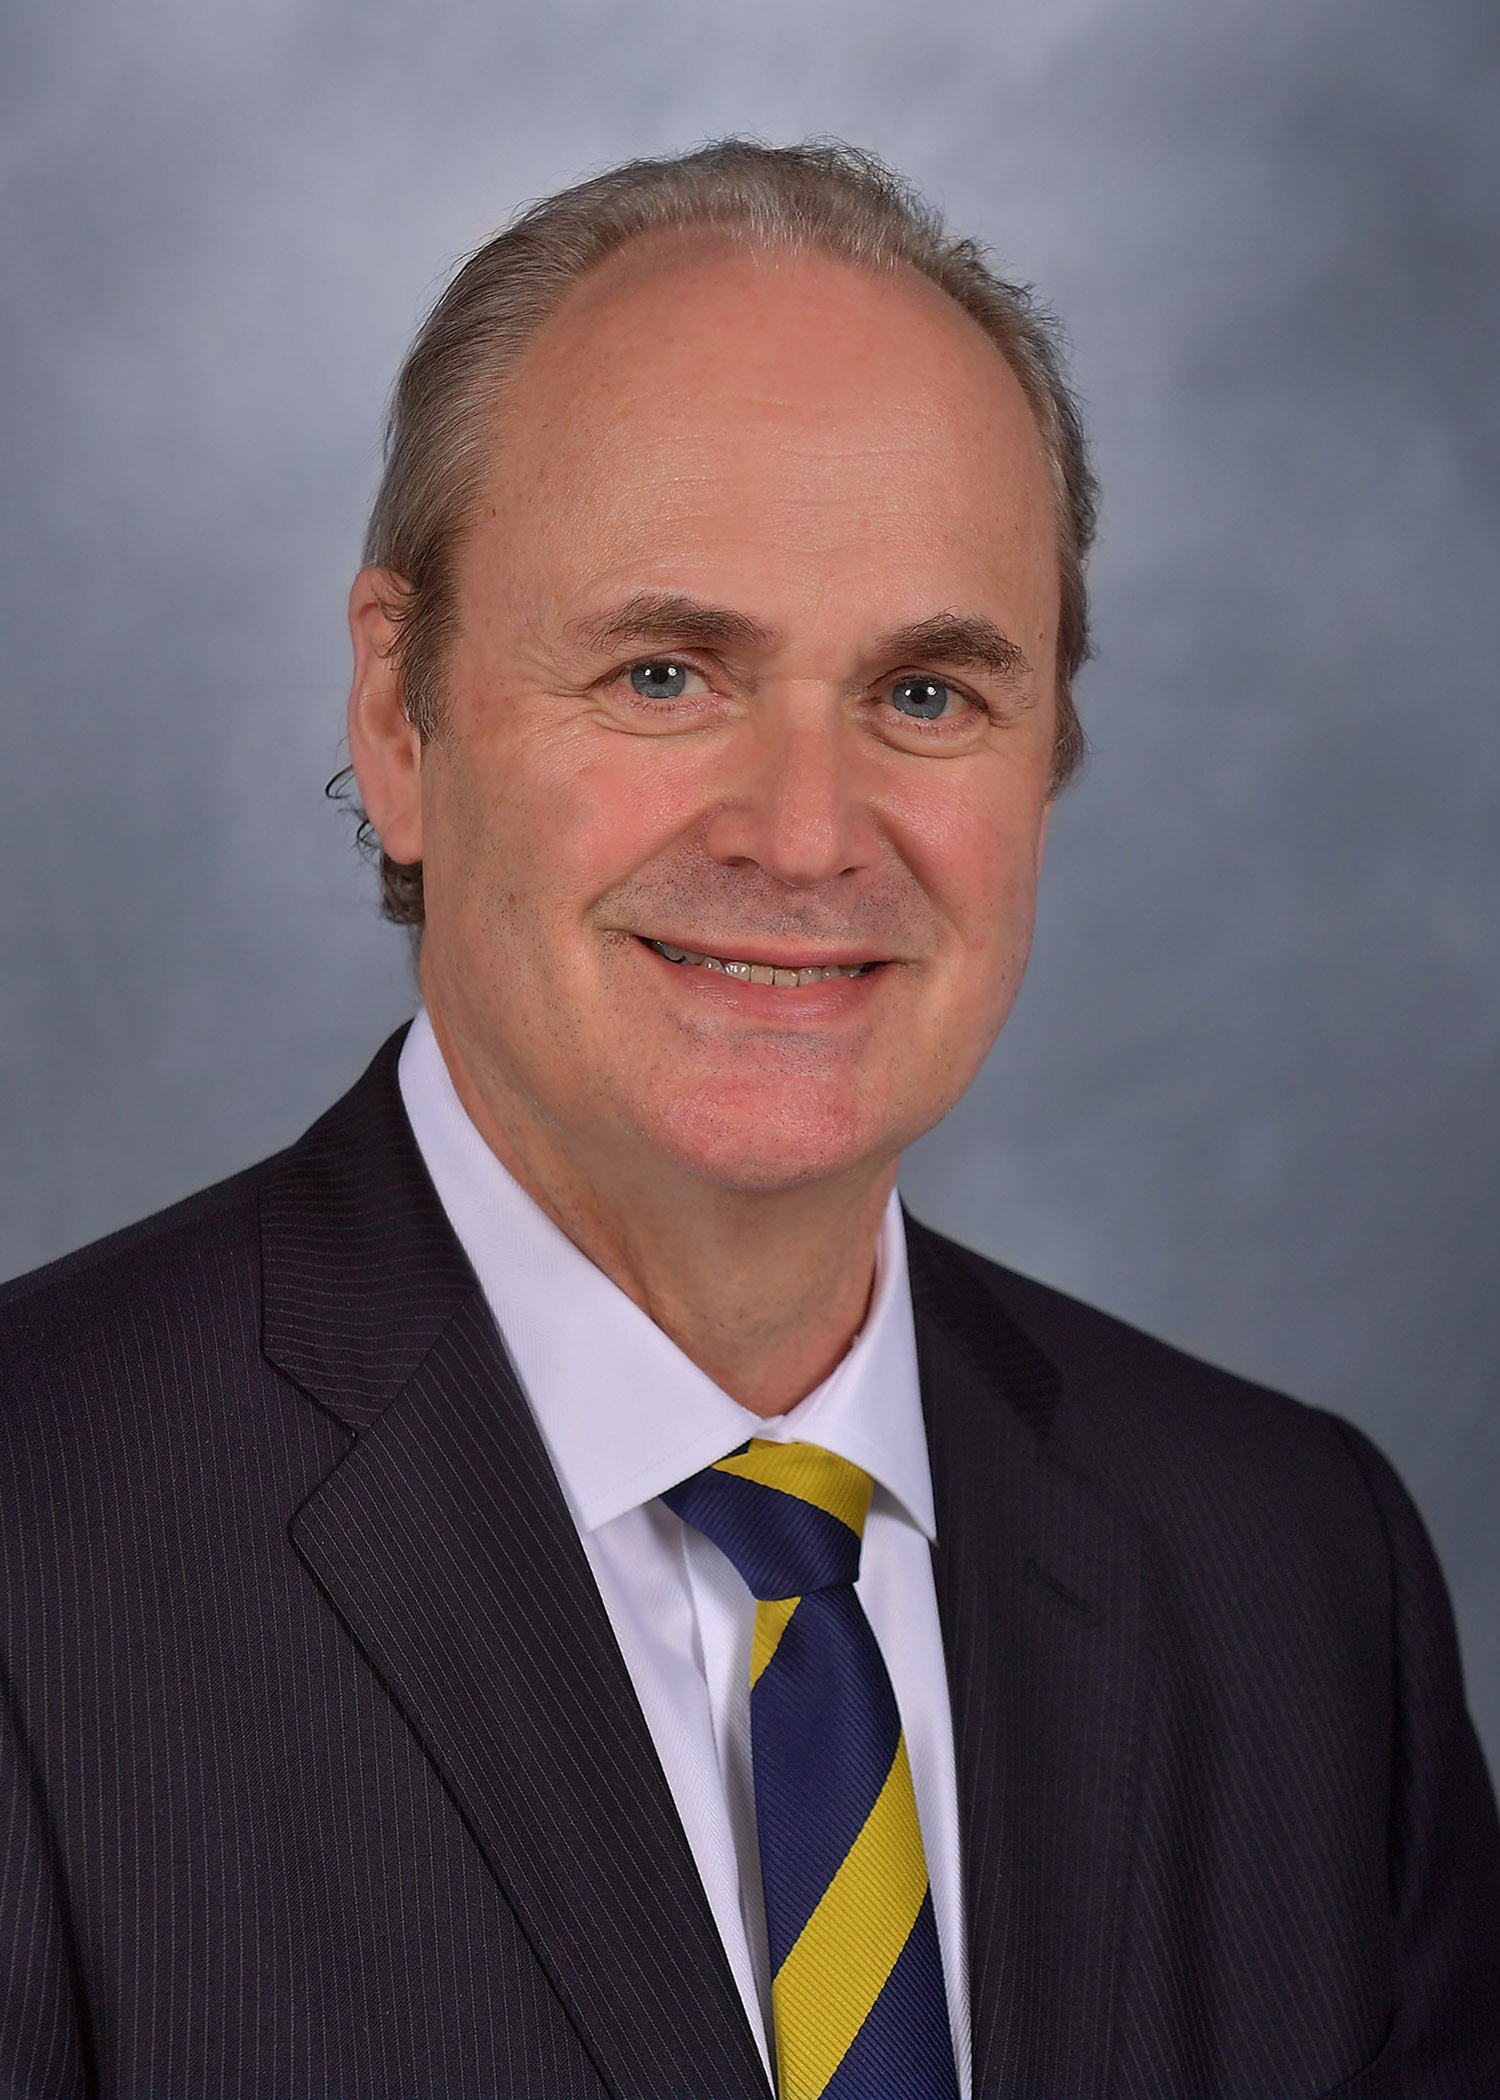 The inauguration of Todd Diacon as Kent State University's 13th president takes place Nov. 1, 2019.